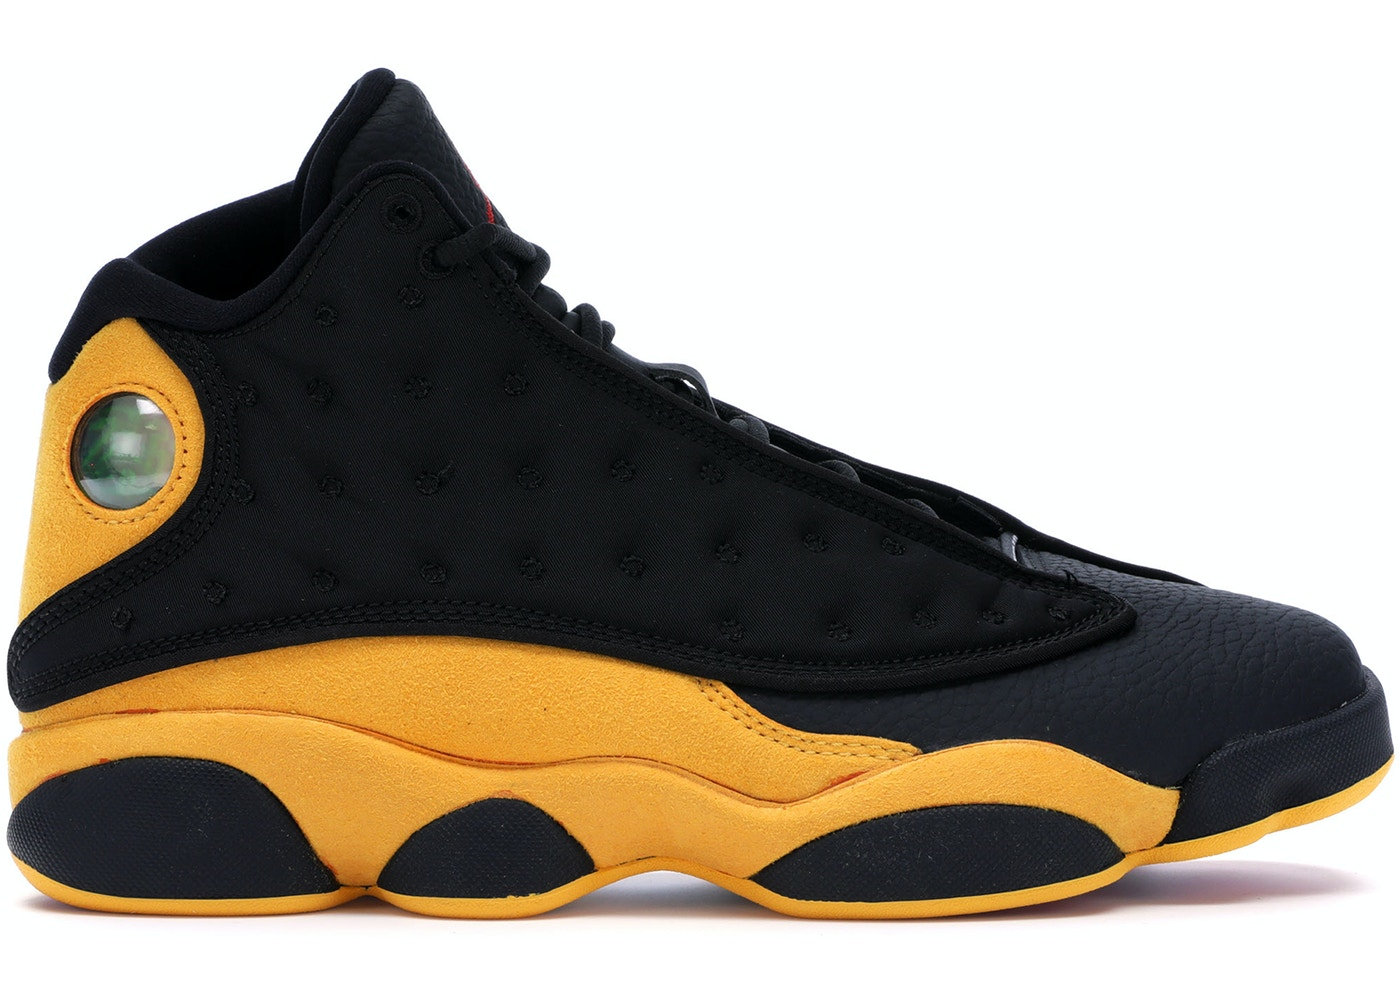 cheap for discount a504e 05ed1 Buy Air Jordan 13 Shoes & Deadstock Sneakers